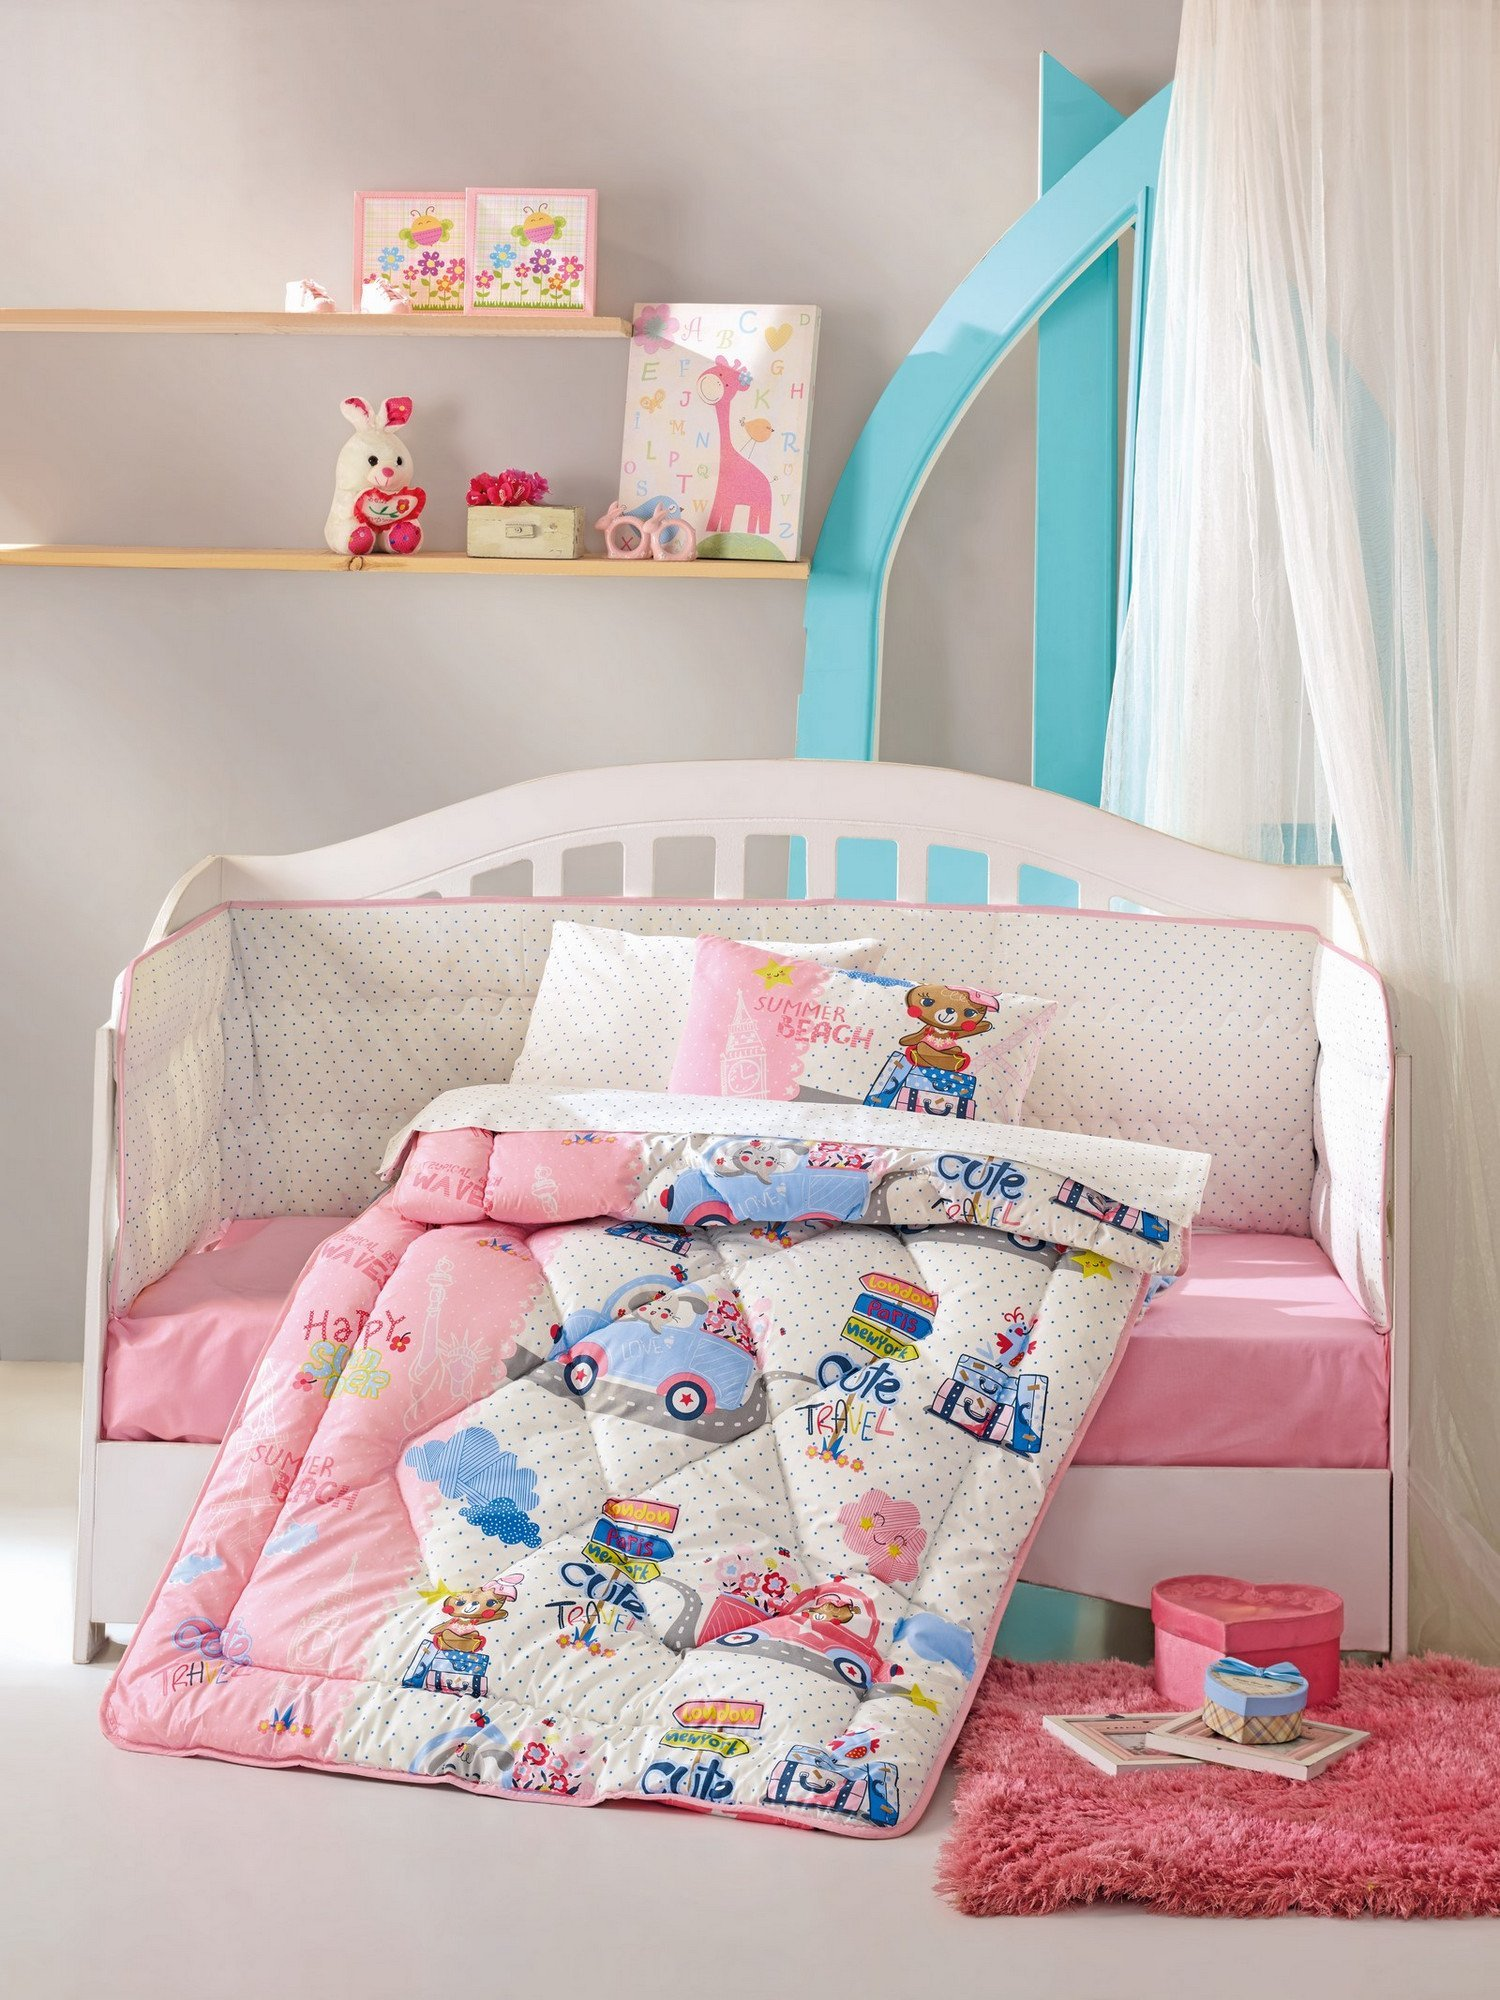 LaModaHome 6 Pcs Luxury Soft Colored Bedroom Bedding 100% Cotton Ranforce Baby Sleep Set Quilt Protector/Soft Relaxing Comfortable Pattern Design Mermaid Sea/Baby Bed Size with Flat Seet